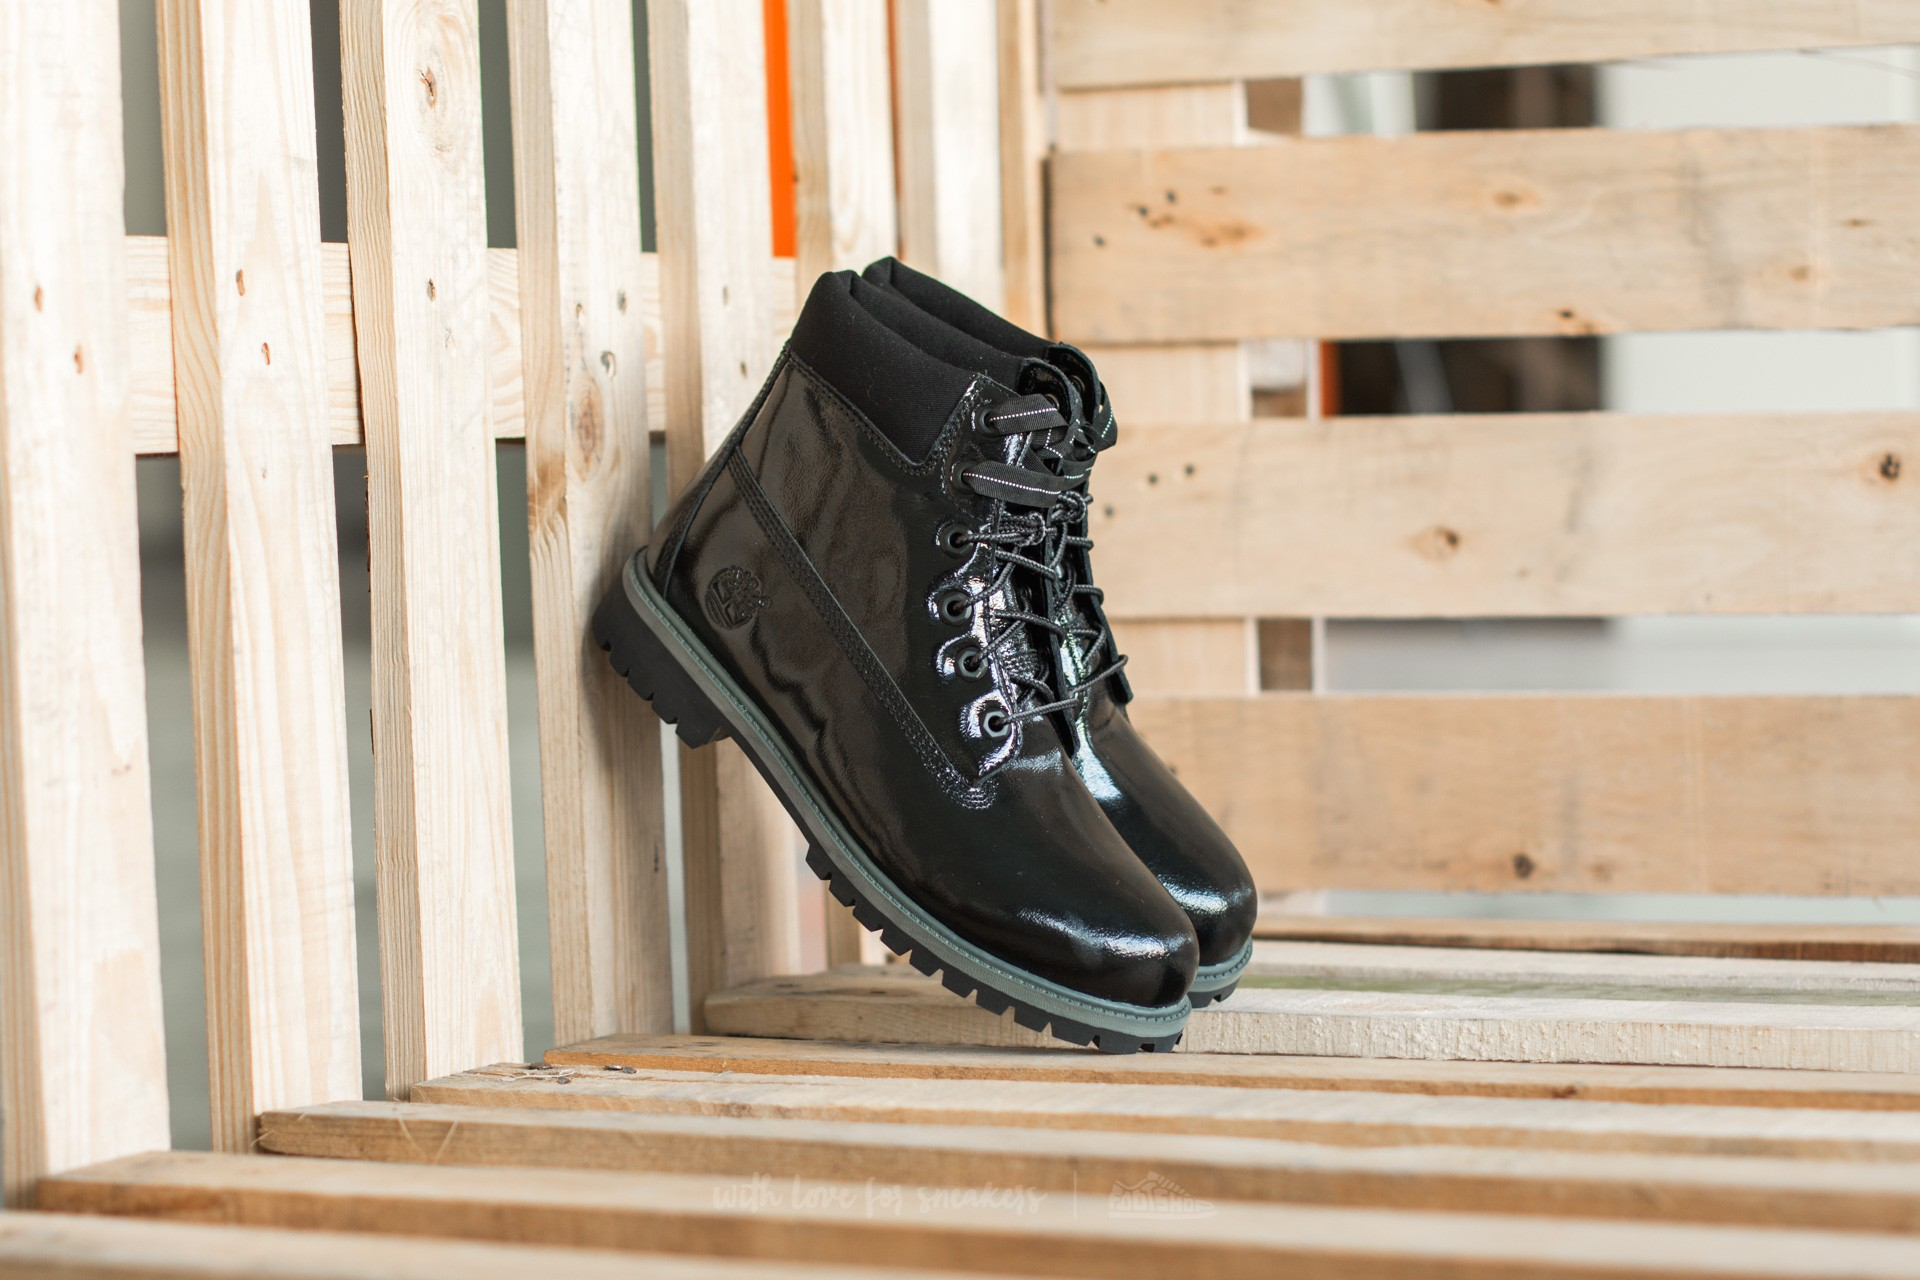 Timberland 6 in Premium Waterproof Boot Black